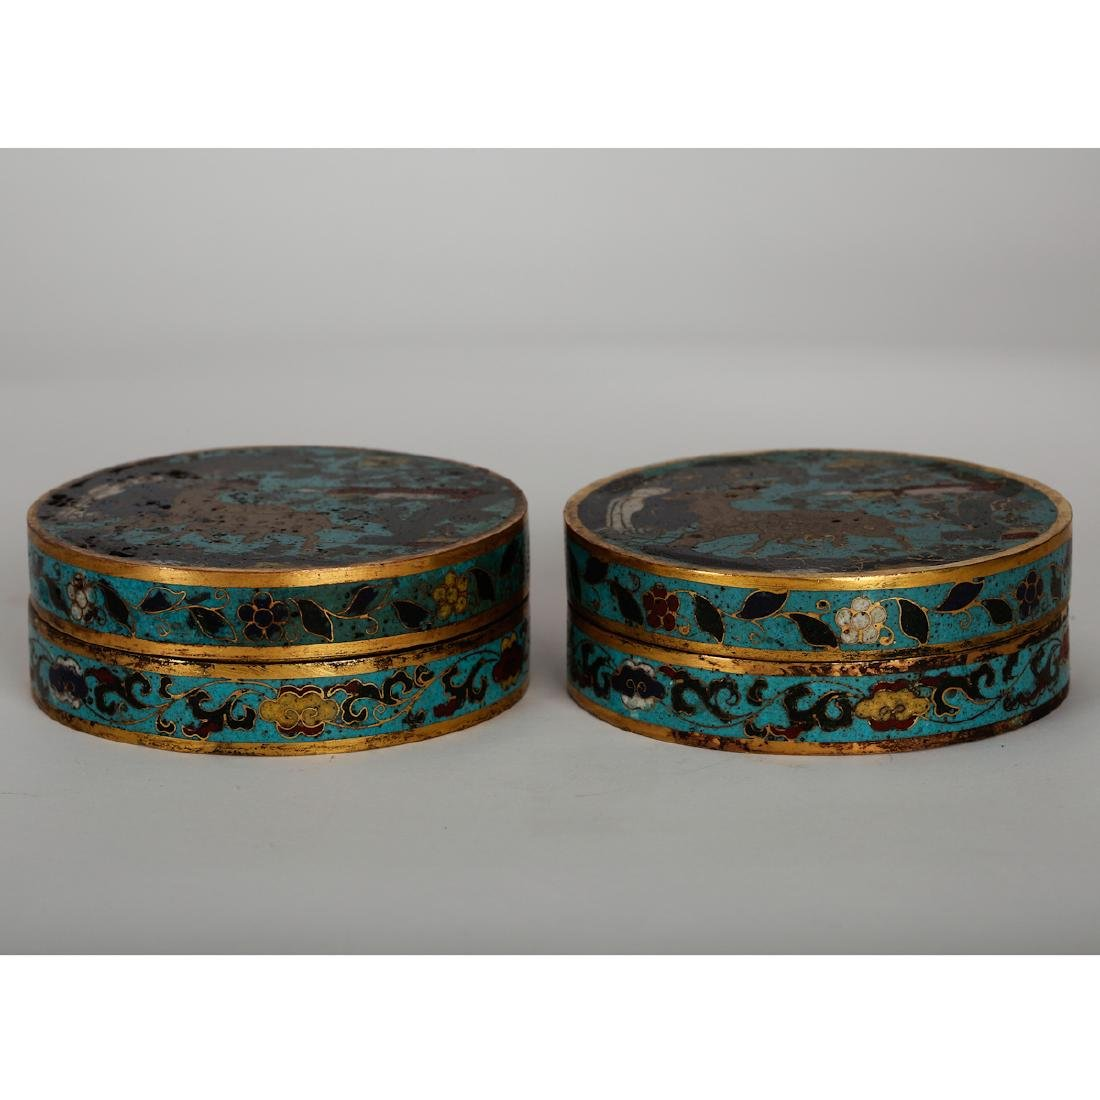 CHINESE CLOISONNE COVER BOX, PAIR